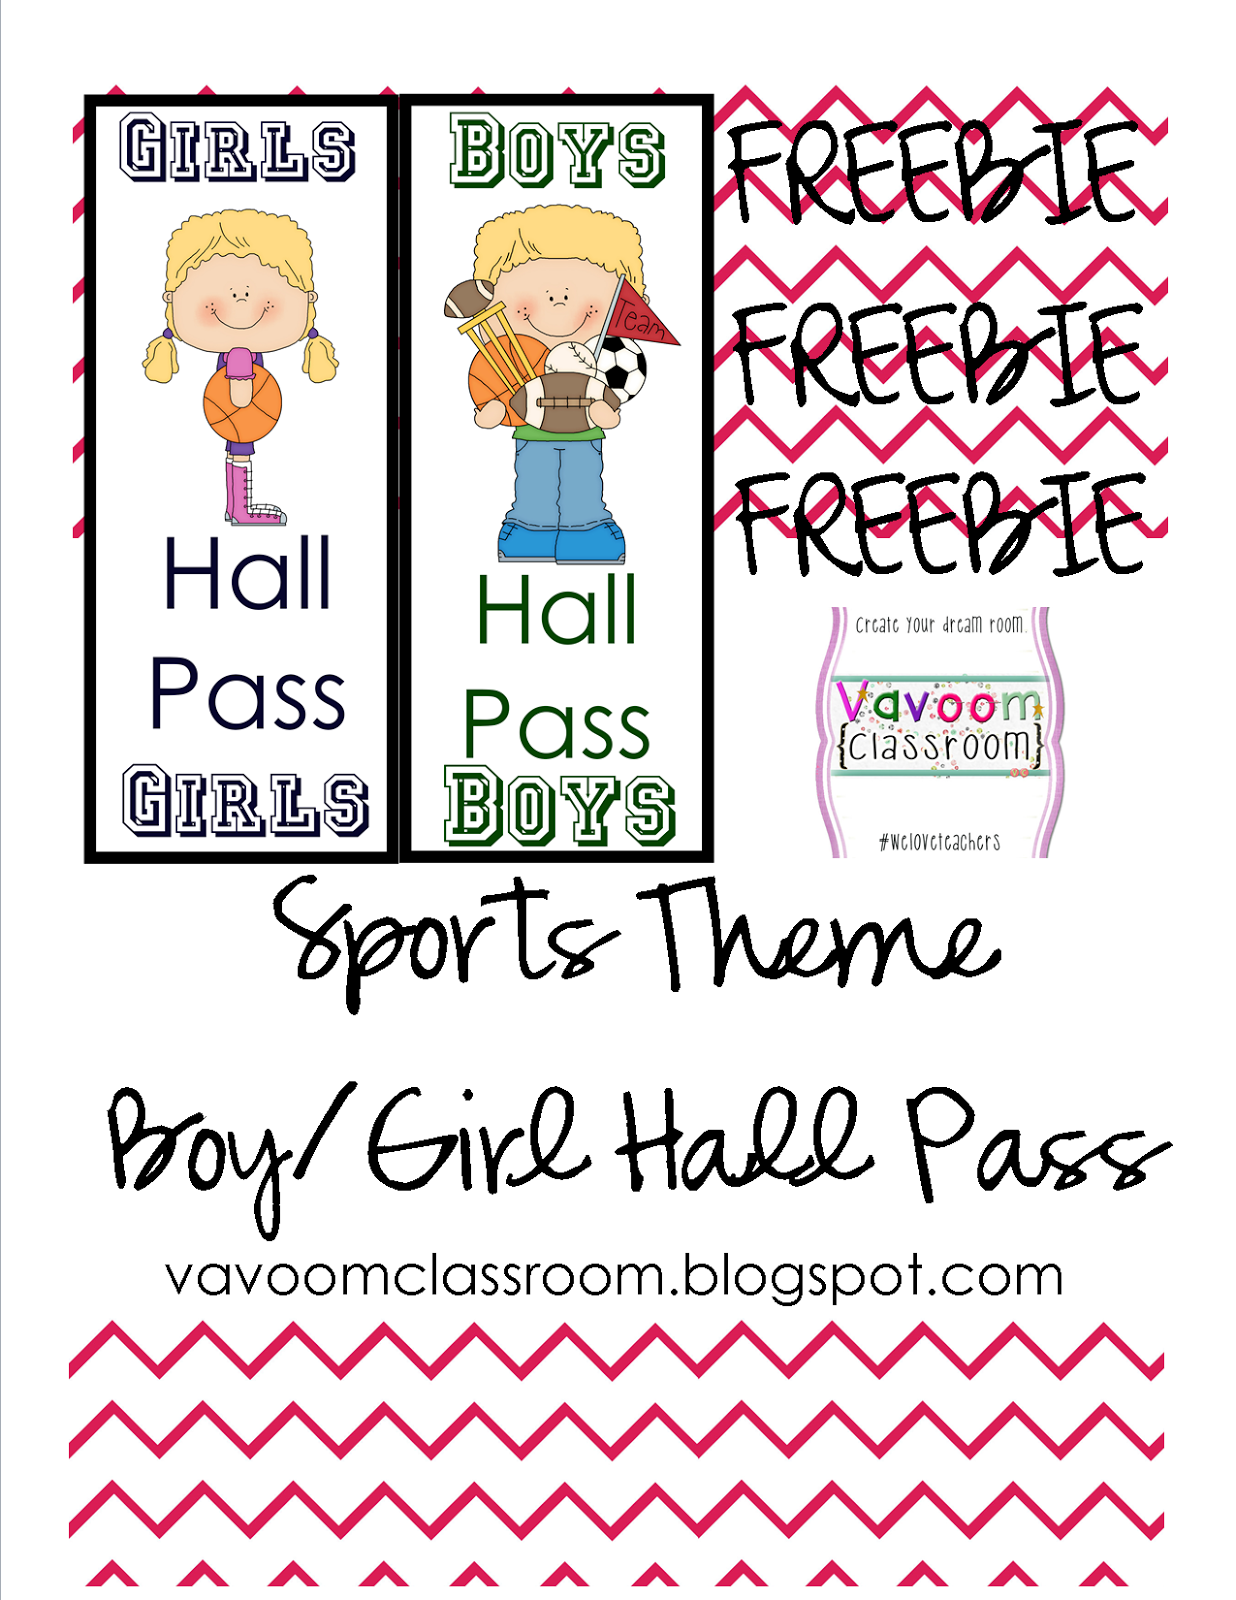 It's just an image of Eloquent Printable Hall Pass